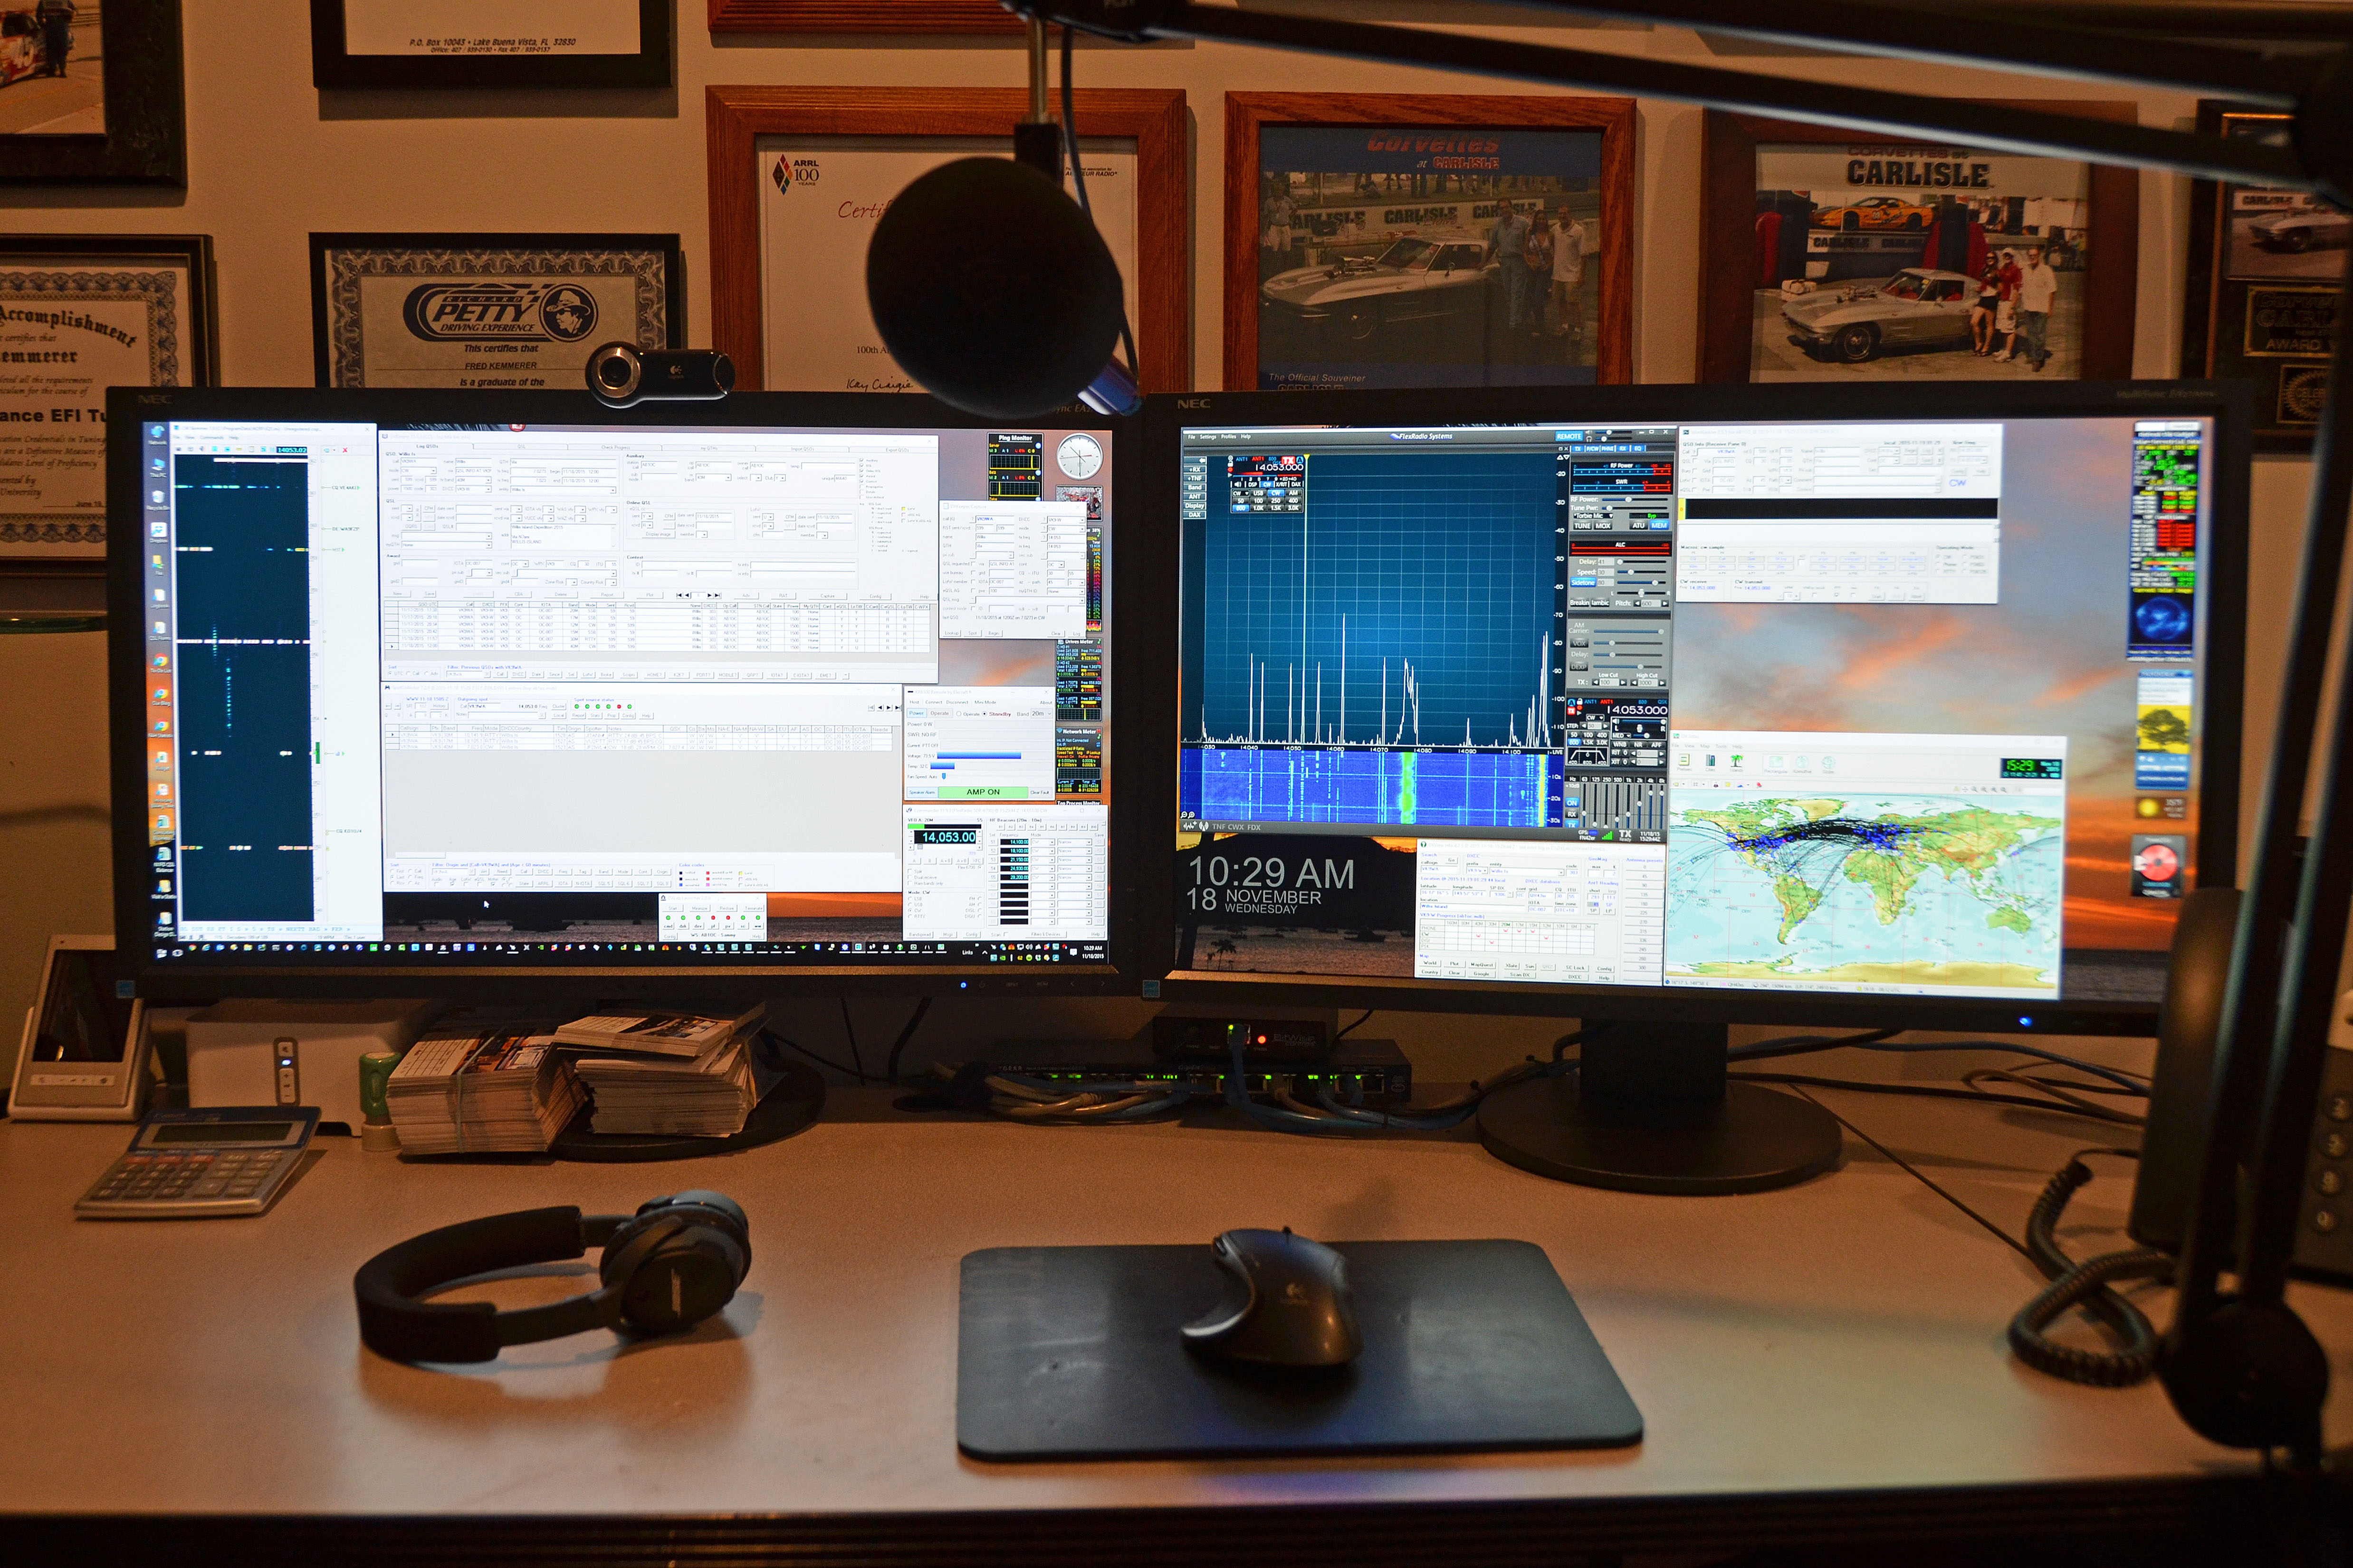 major competition stations ham radio Remote Operating Setup In Our Home Office